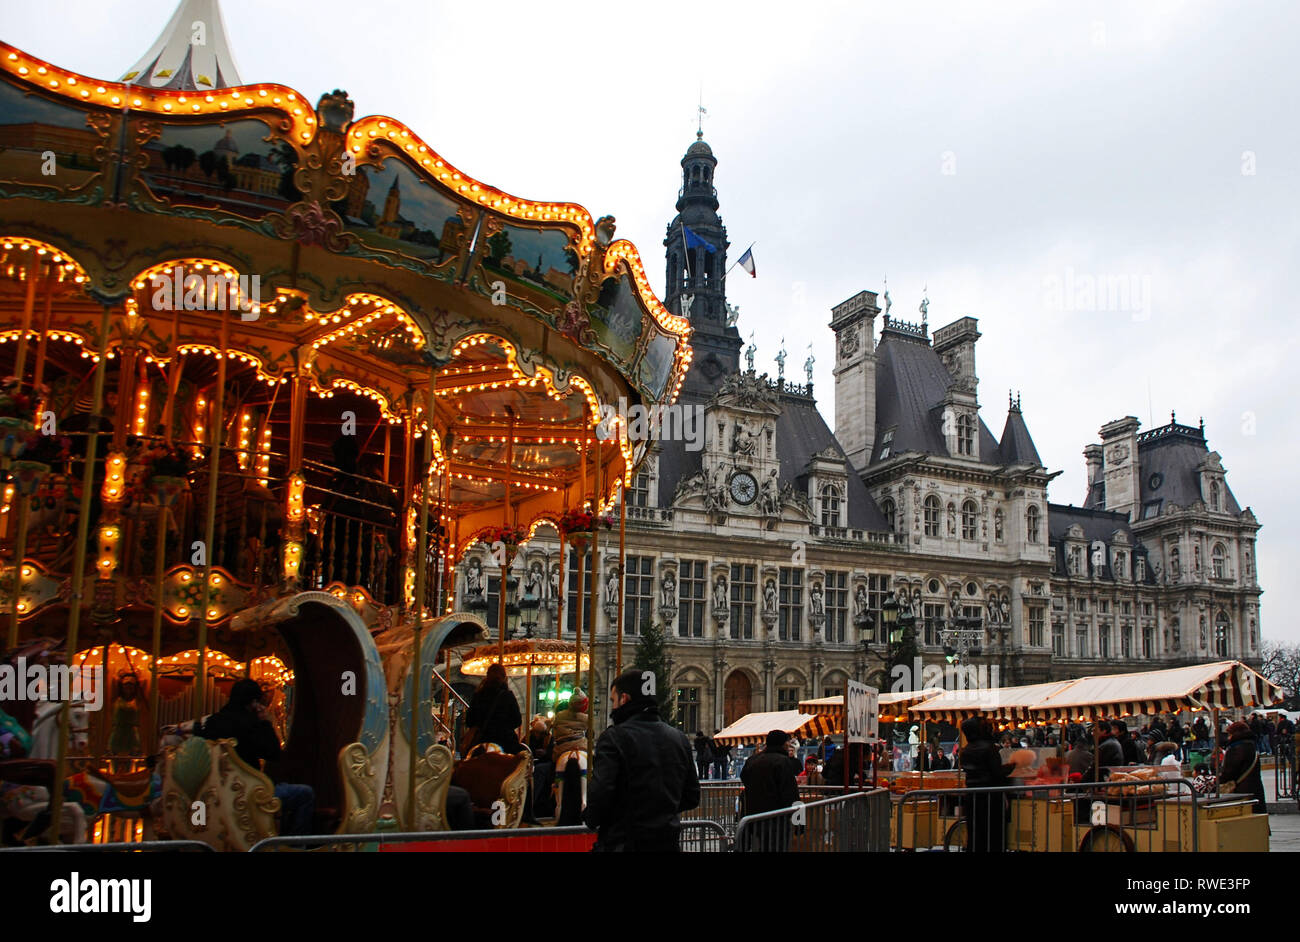 Hotel de Ville with a carousel in christmastime, Paris, France - Stock Image